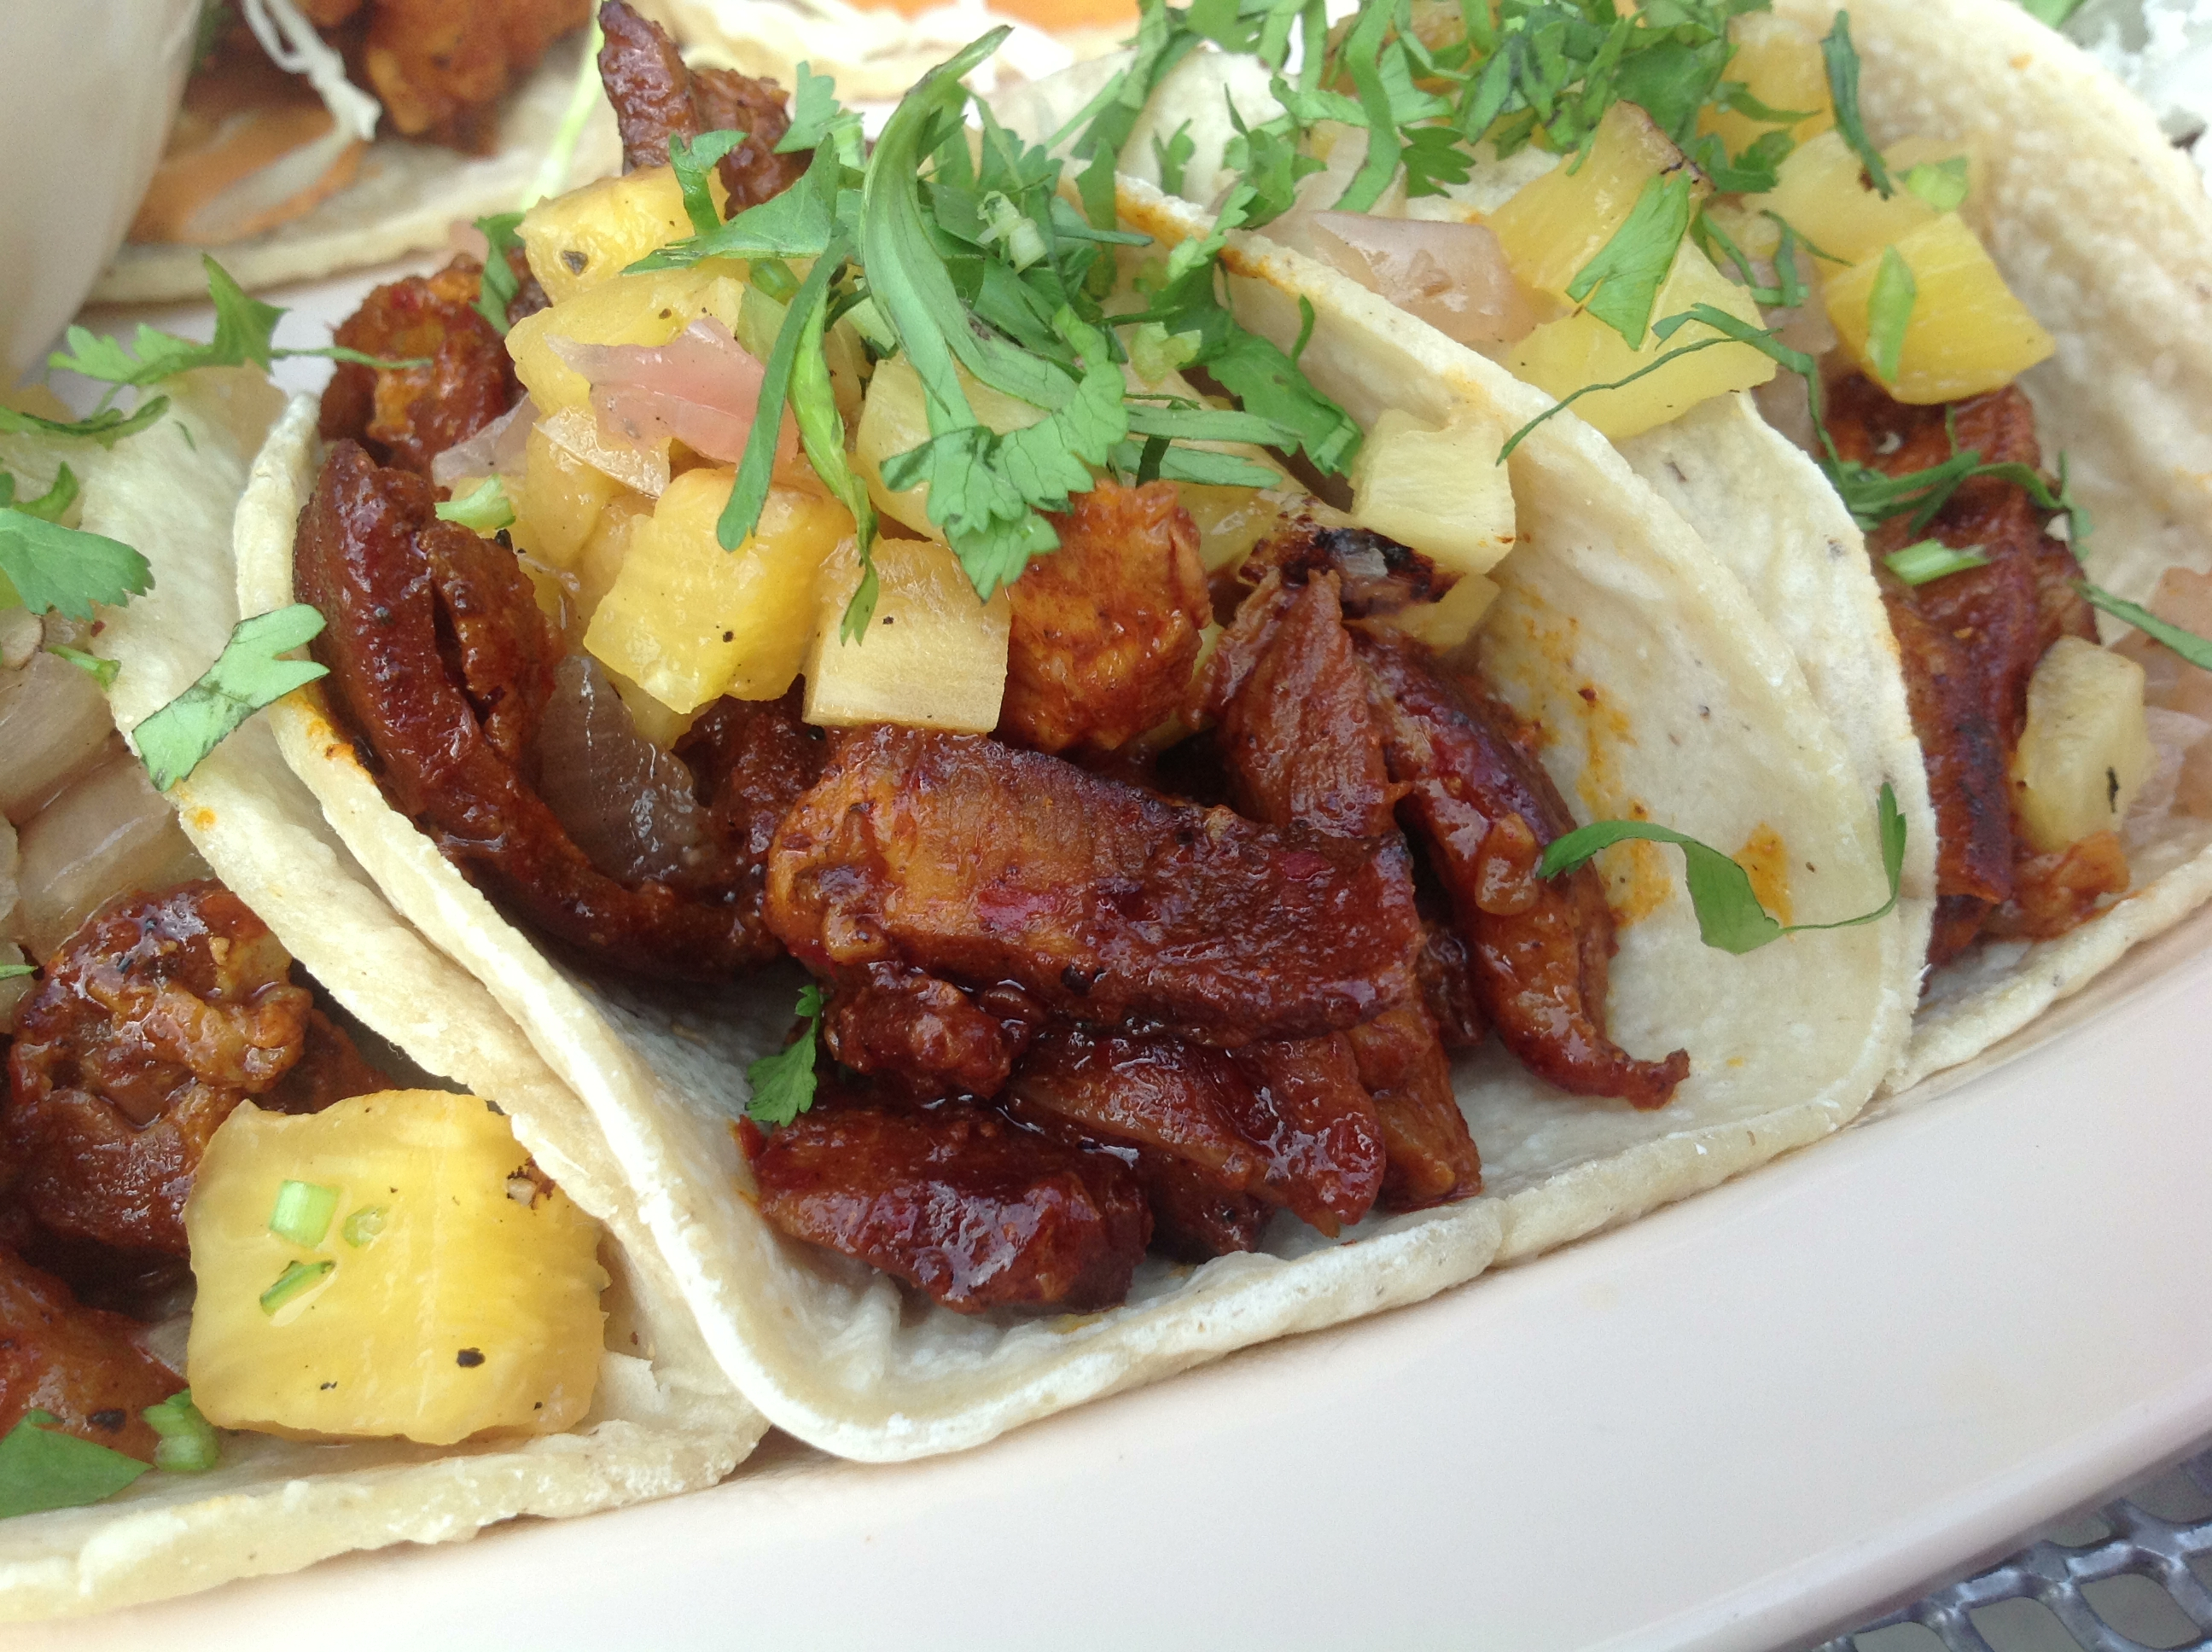 Taco al pastor at Big Star, 1531 N Damen Ave, Chicago